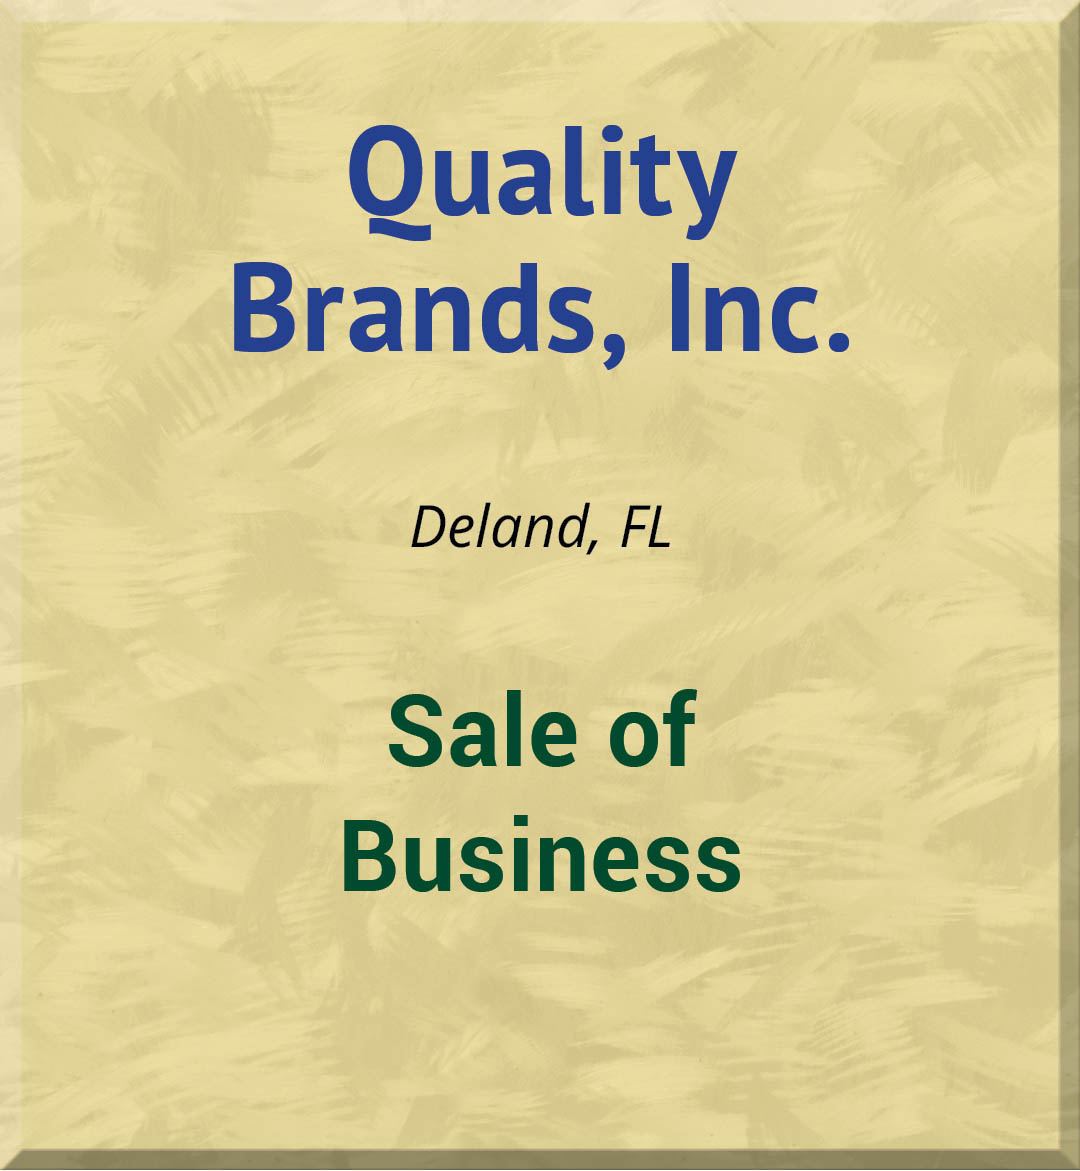 Quality Brands, Inc.